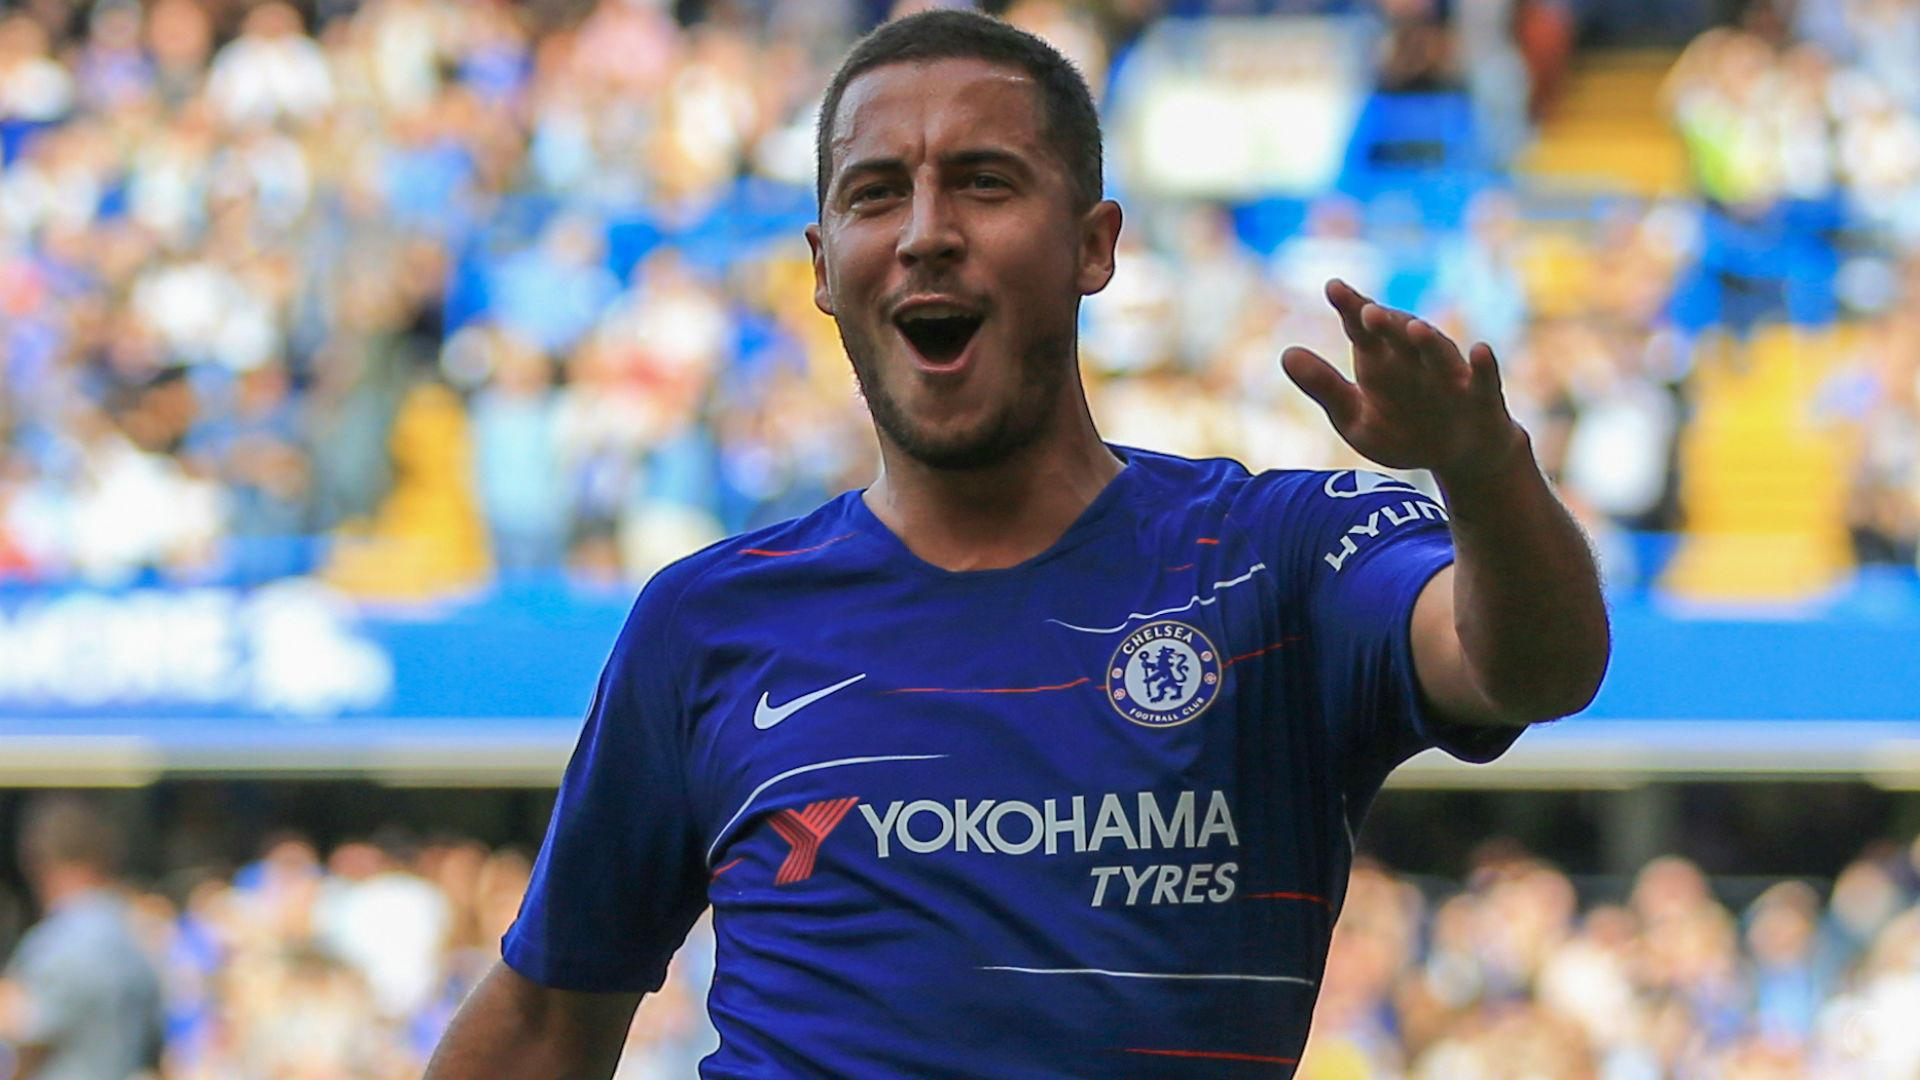 Sarri backs Hazard to become world's best at Chelsea